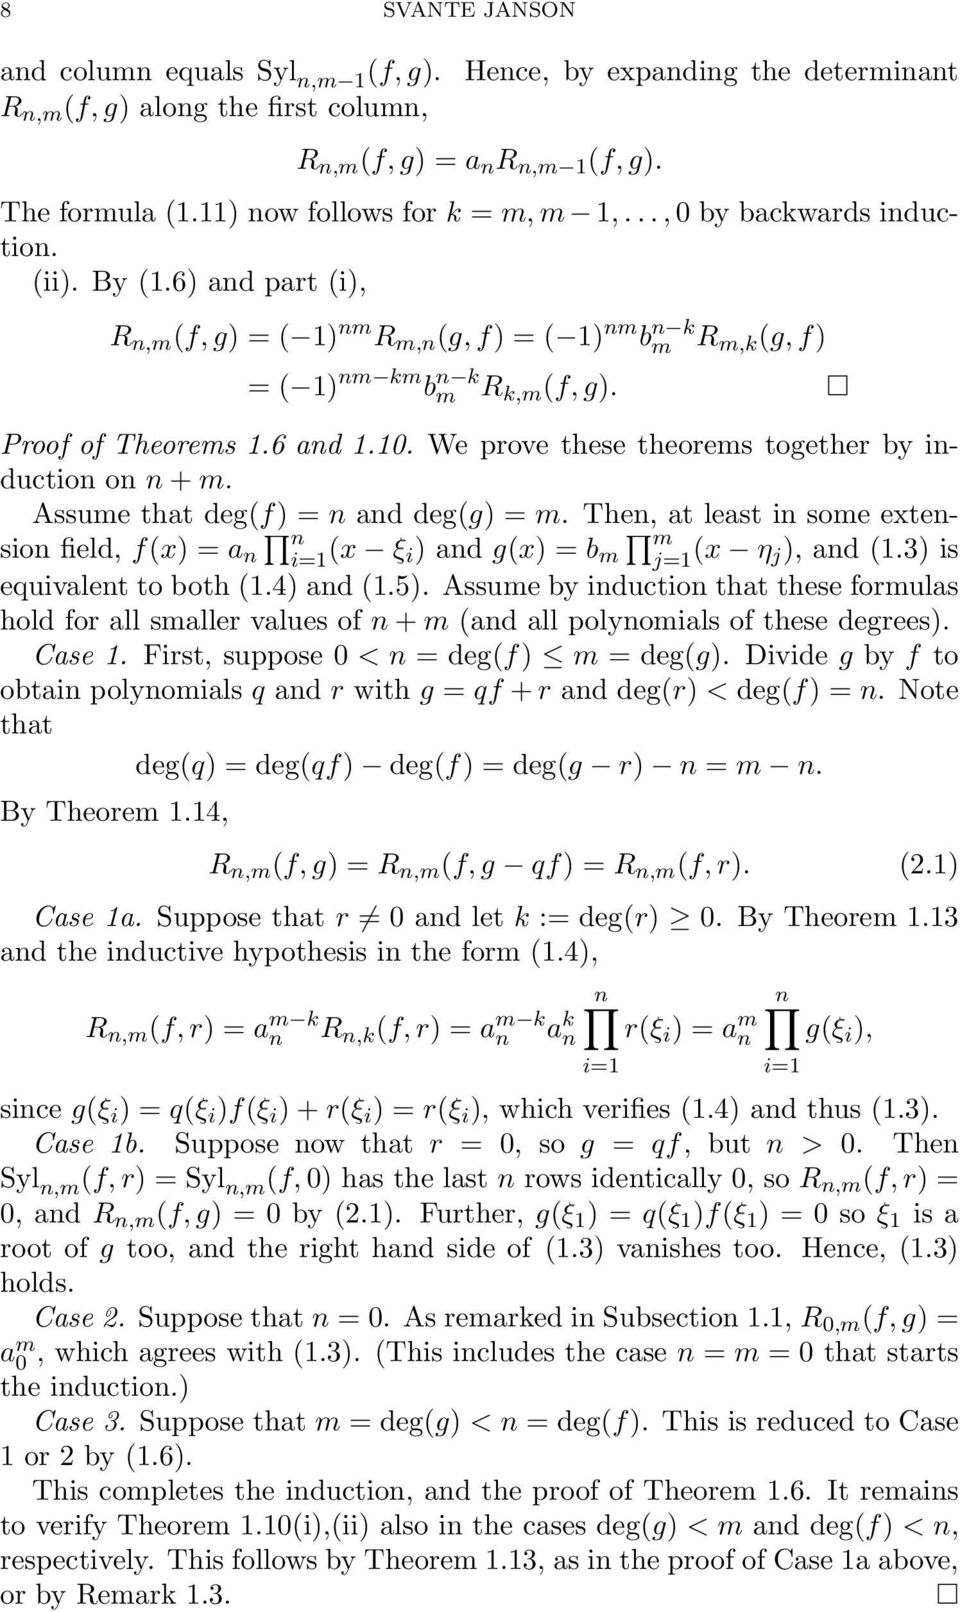 Proof of Theorems 1.6 and 1.10. We prove these theorems together by induction on n + m. Assume that deg(f) = n and deg(g) = m.